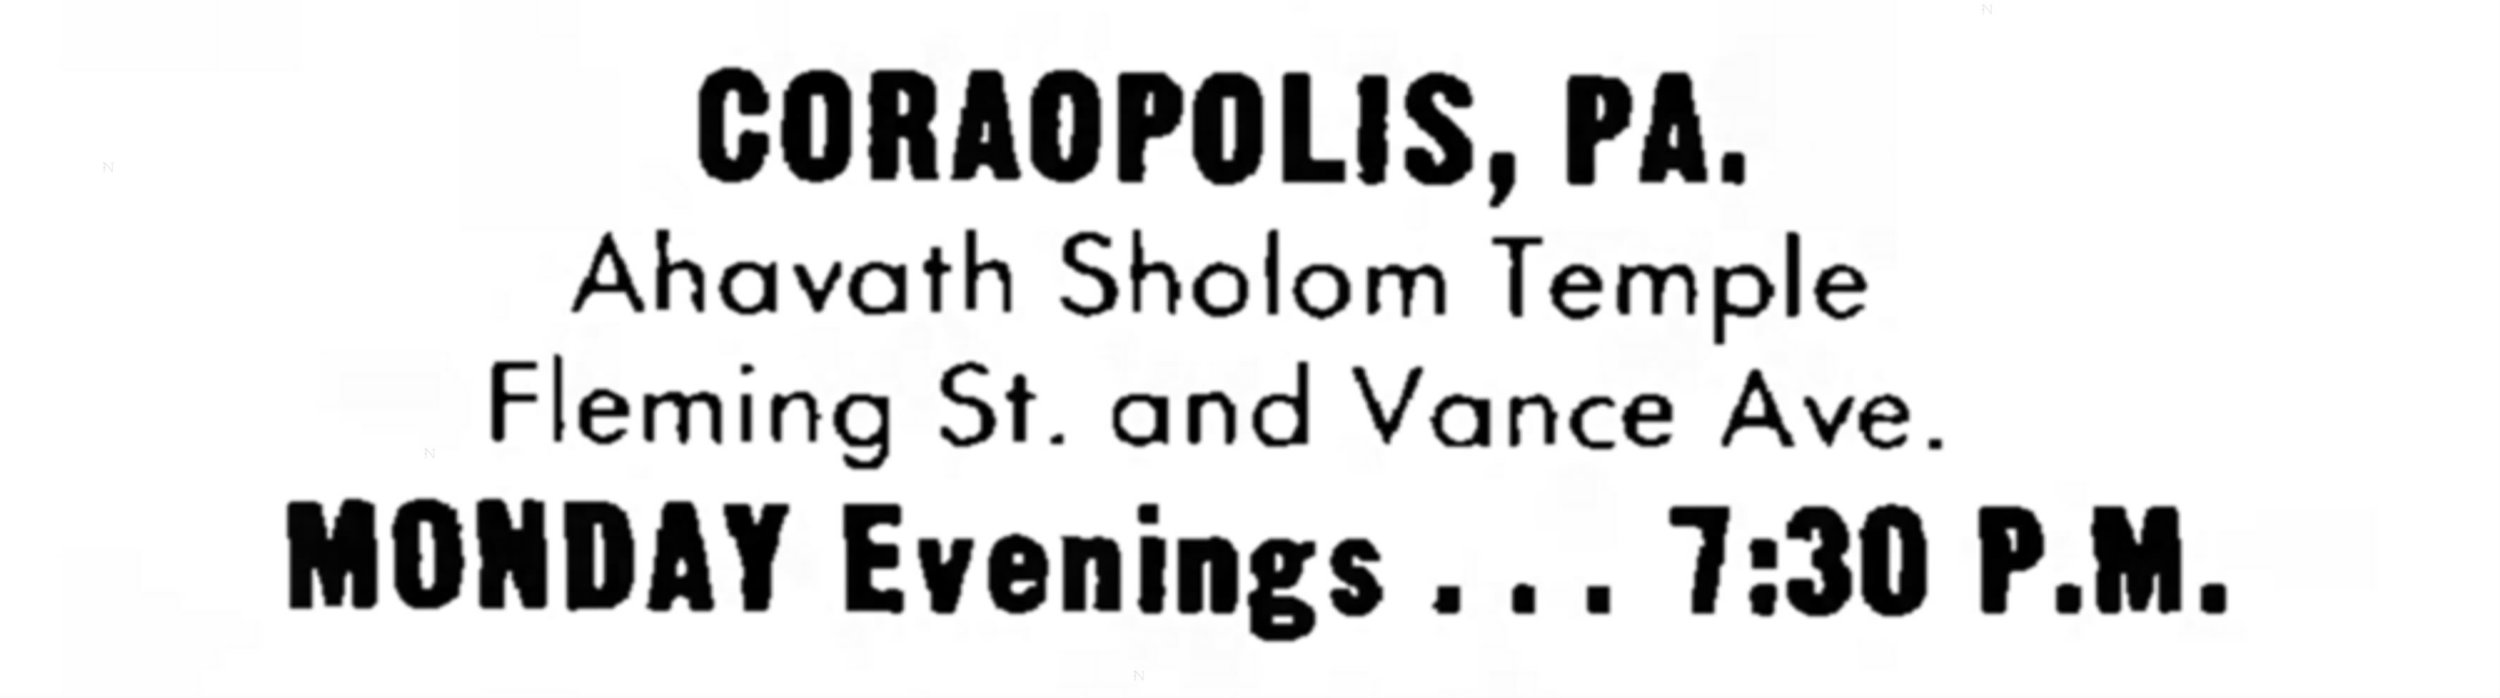 North Hills News Record, March 17, 1973